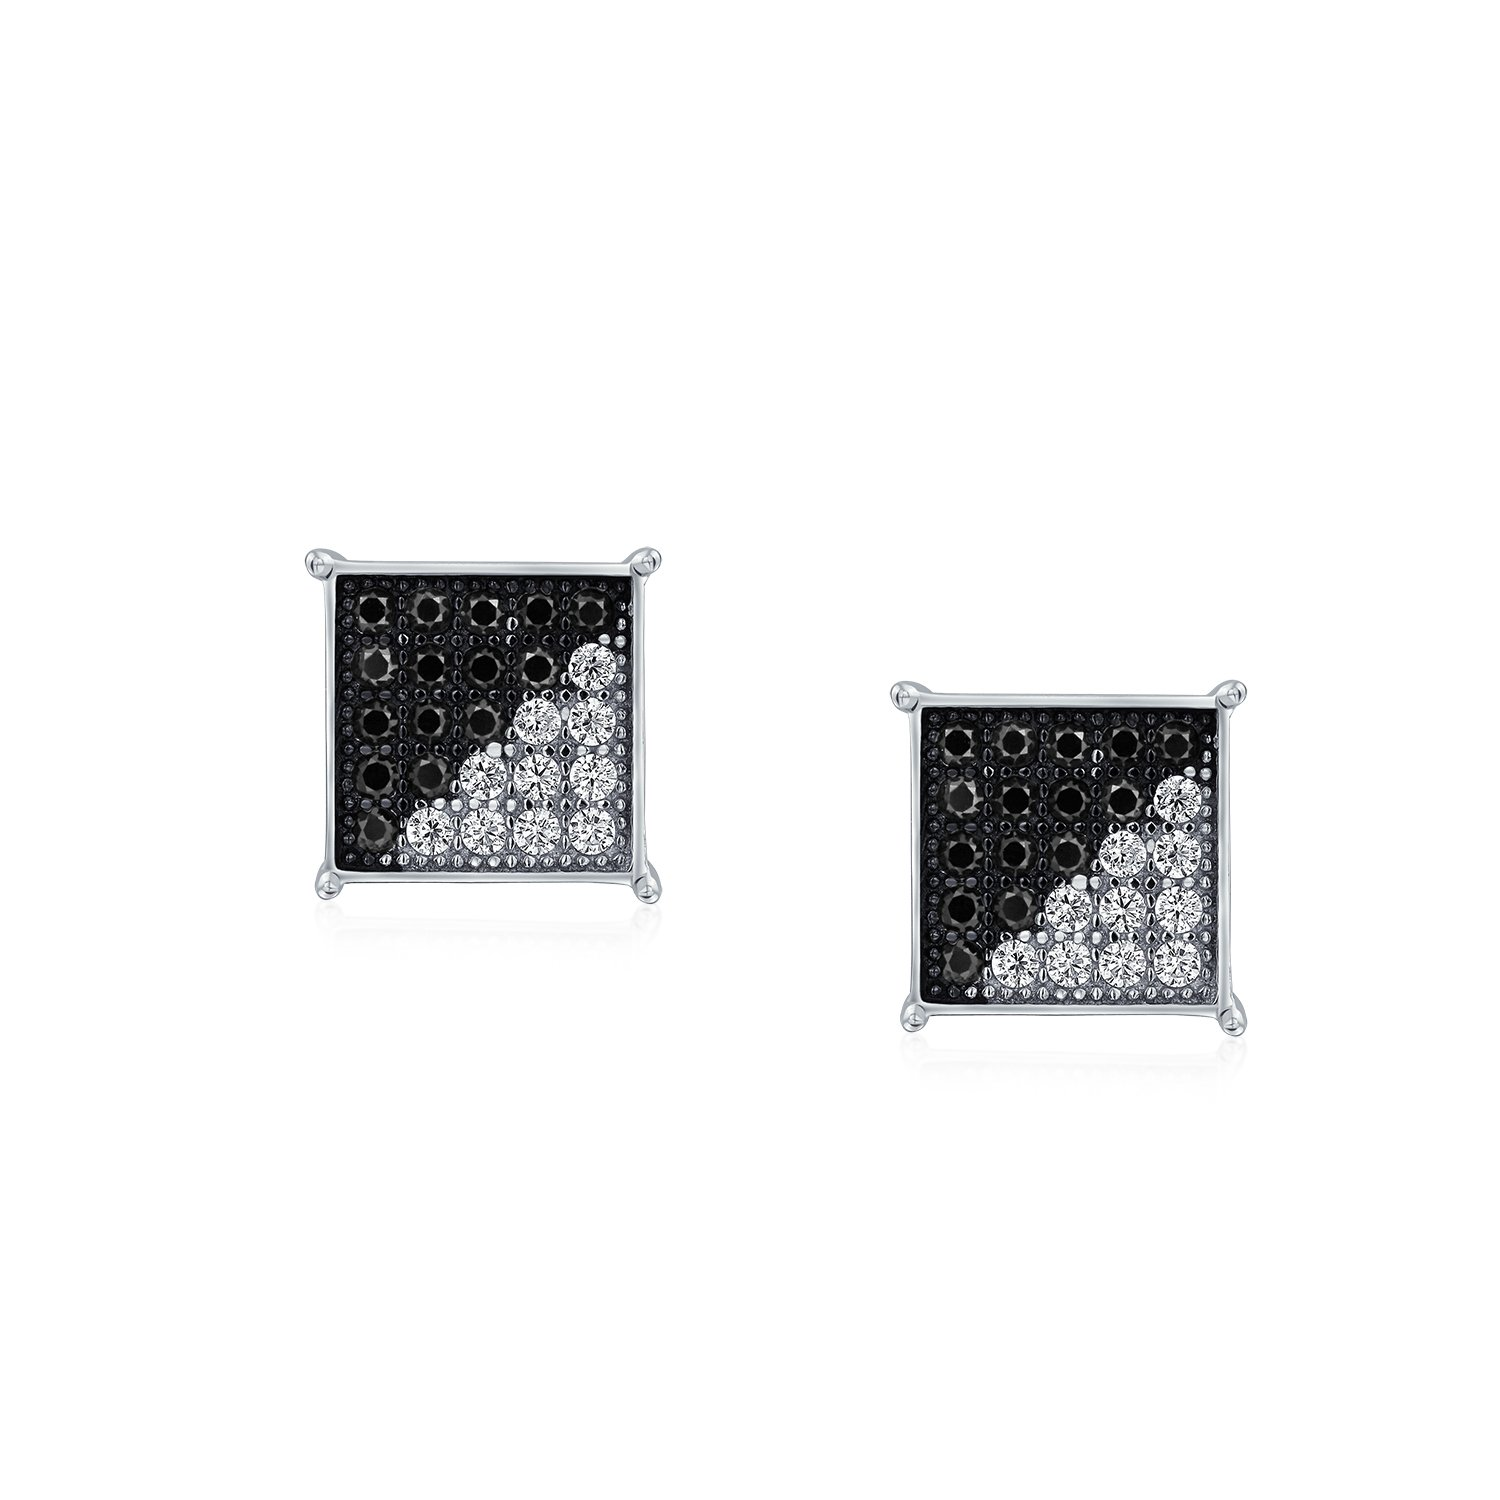 805db4ffd Amazon.com: Black White Cubic Zirconia Micro Pave CZ Square Stud Earrings  For Men 925 Sterling Silver 8MM: Jewelry